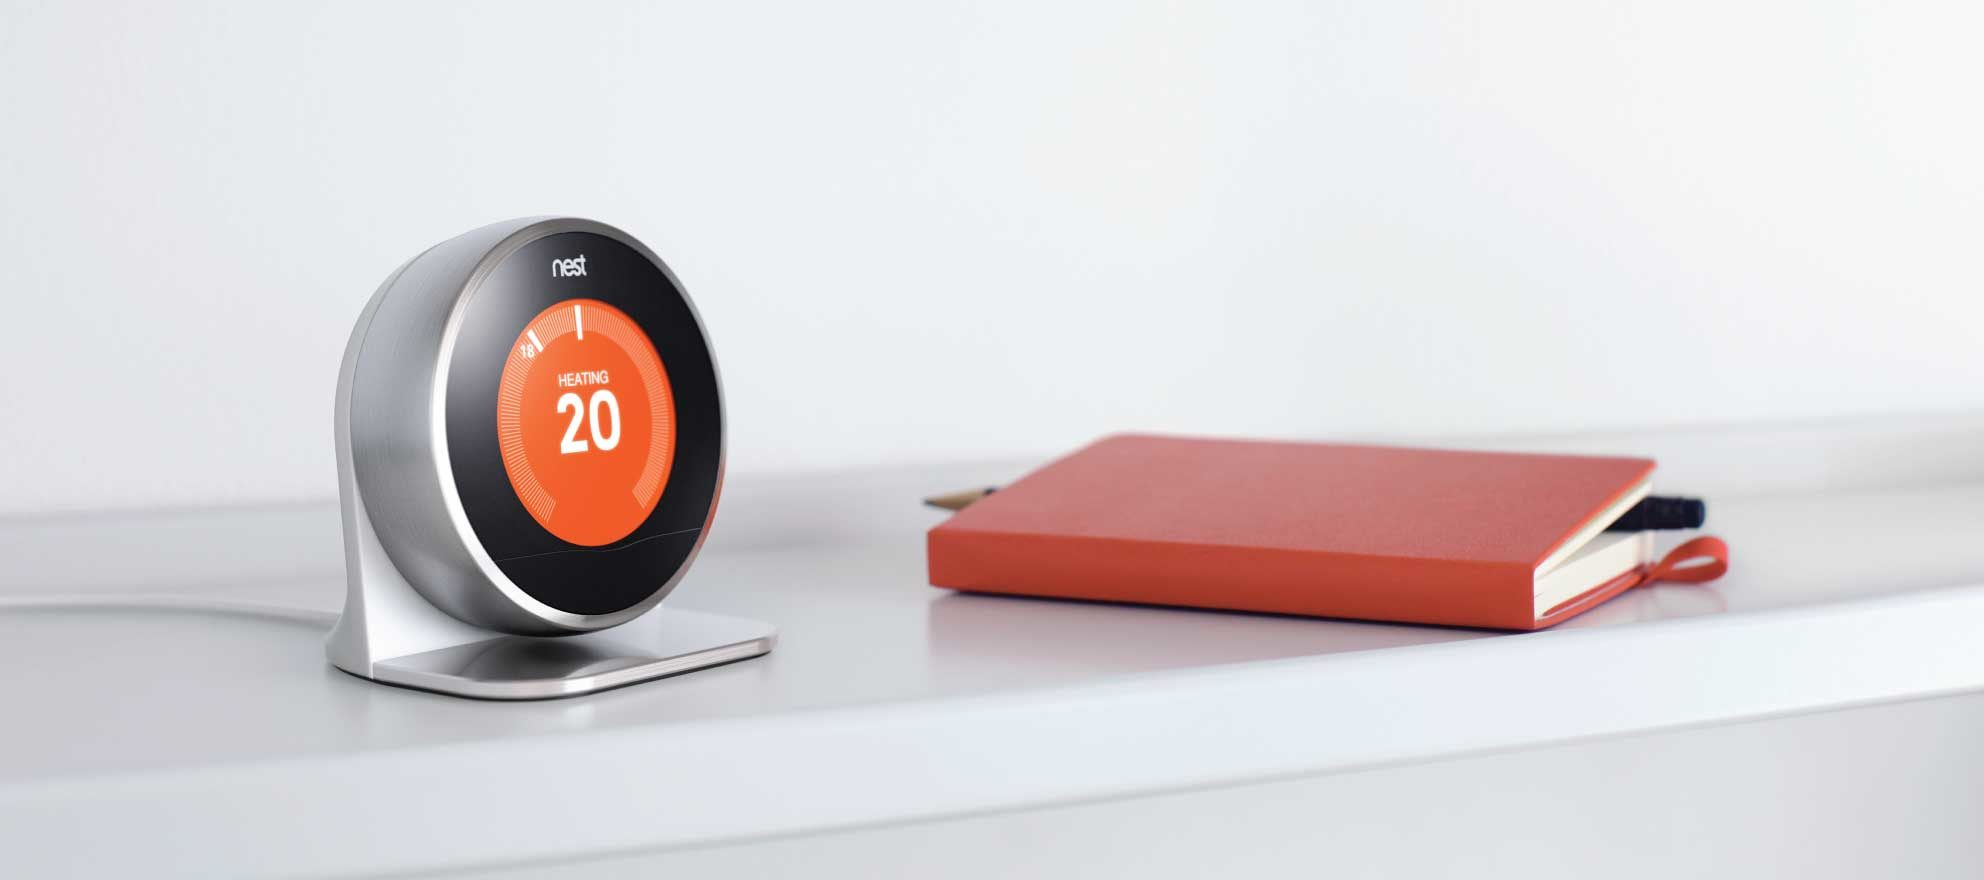 Nest unveils new smart home devices, product features